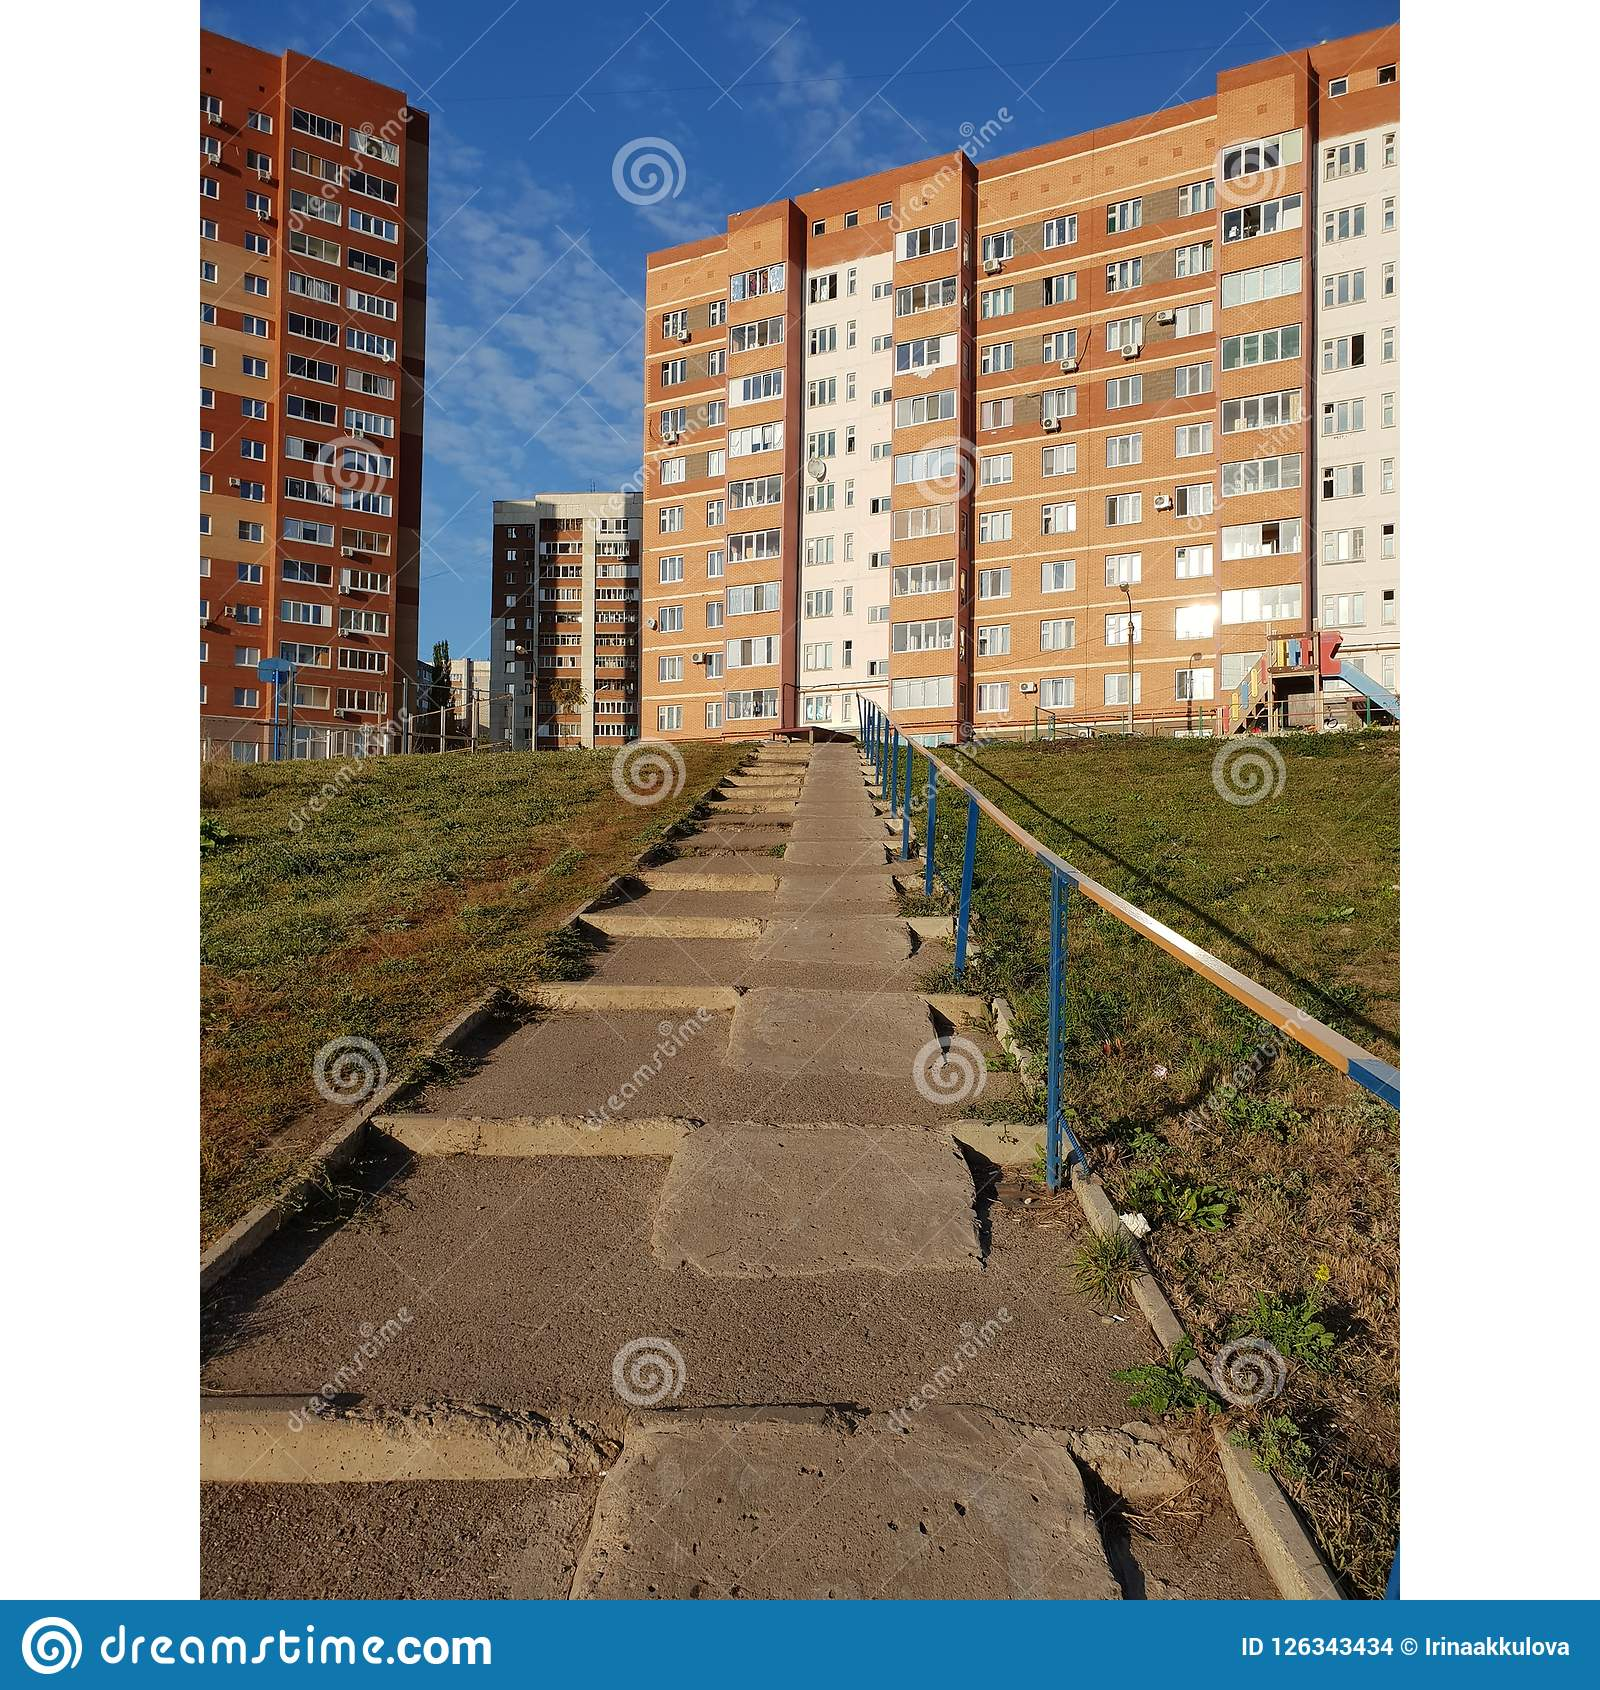 Download Stairs With Ramps Stock Photo. Image Of Disabilities   126343434